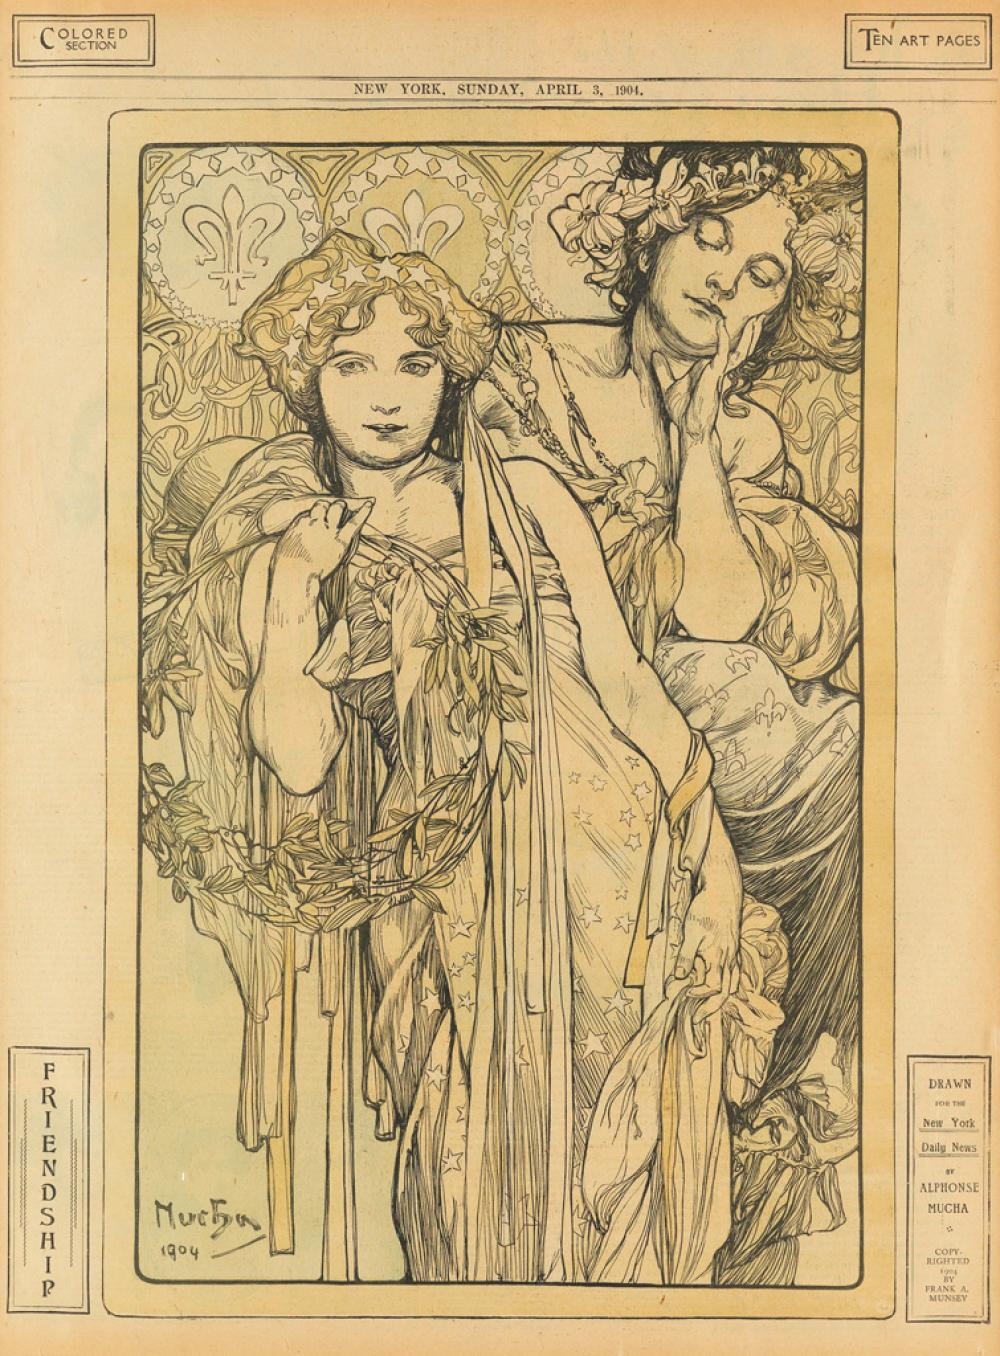 ALPHONSE MUCHA (1860-1939). FRIENDSHIP / NEW YORK DAILY NEWS. April 3, 1904. 20x15 inches, 52x38 cm.